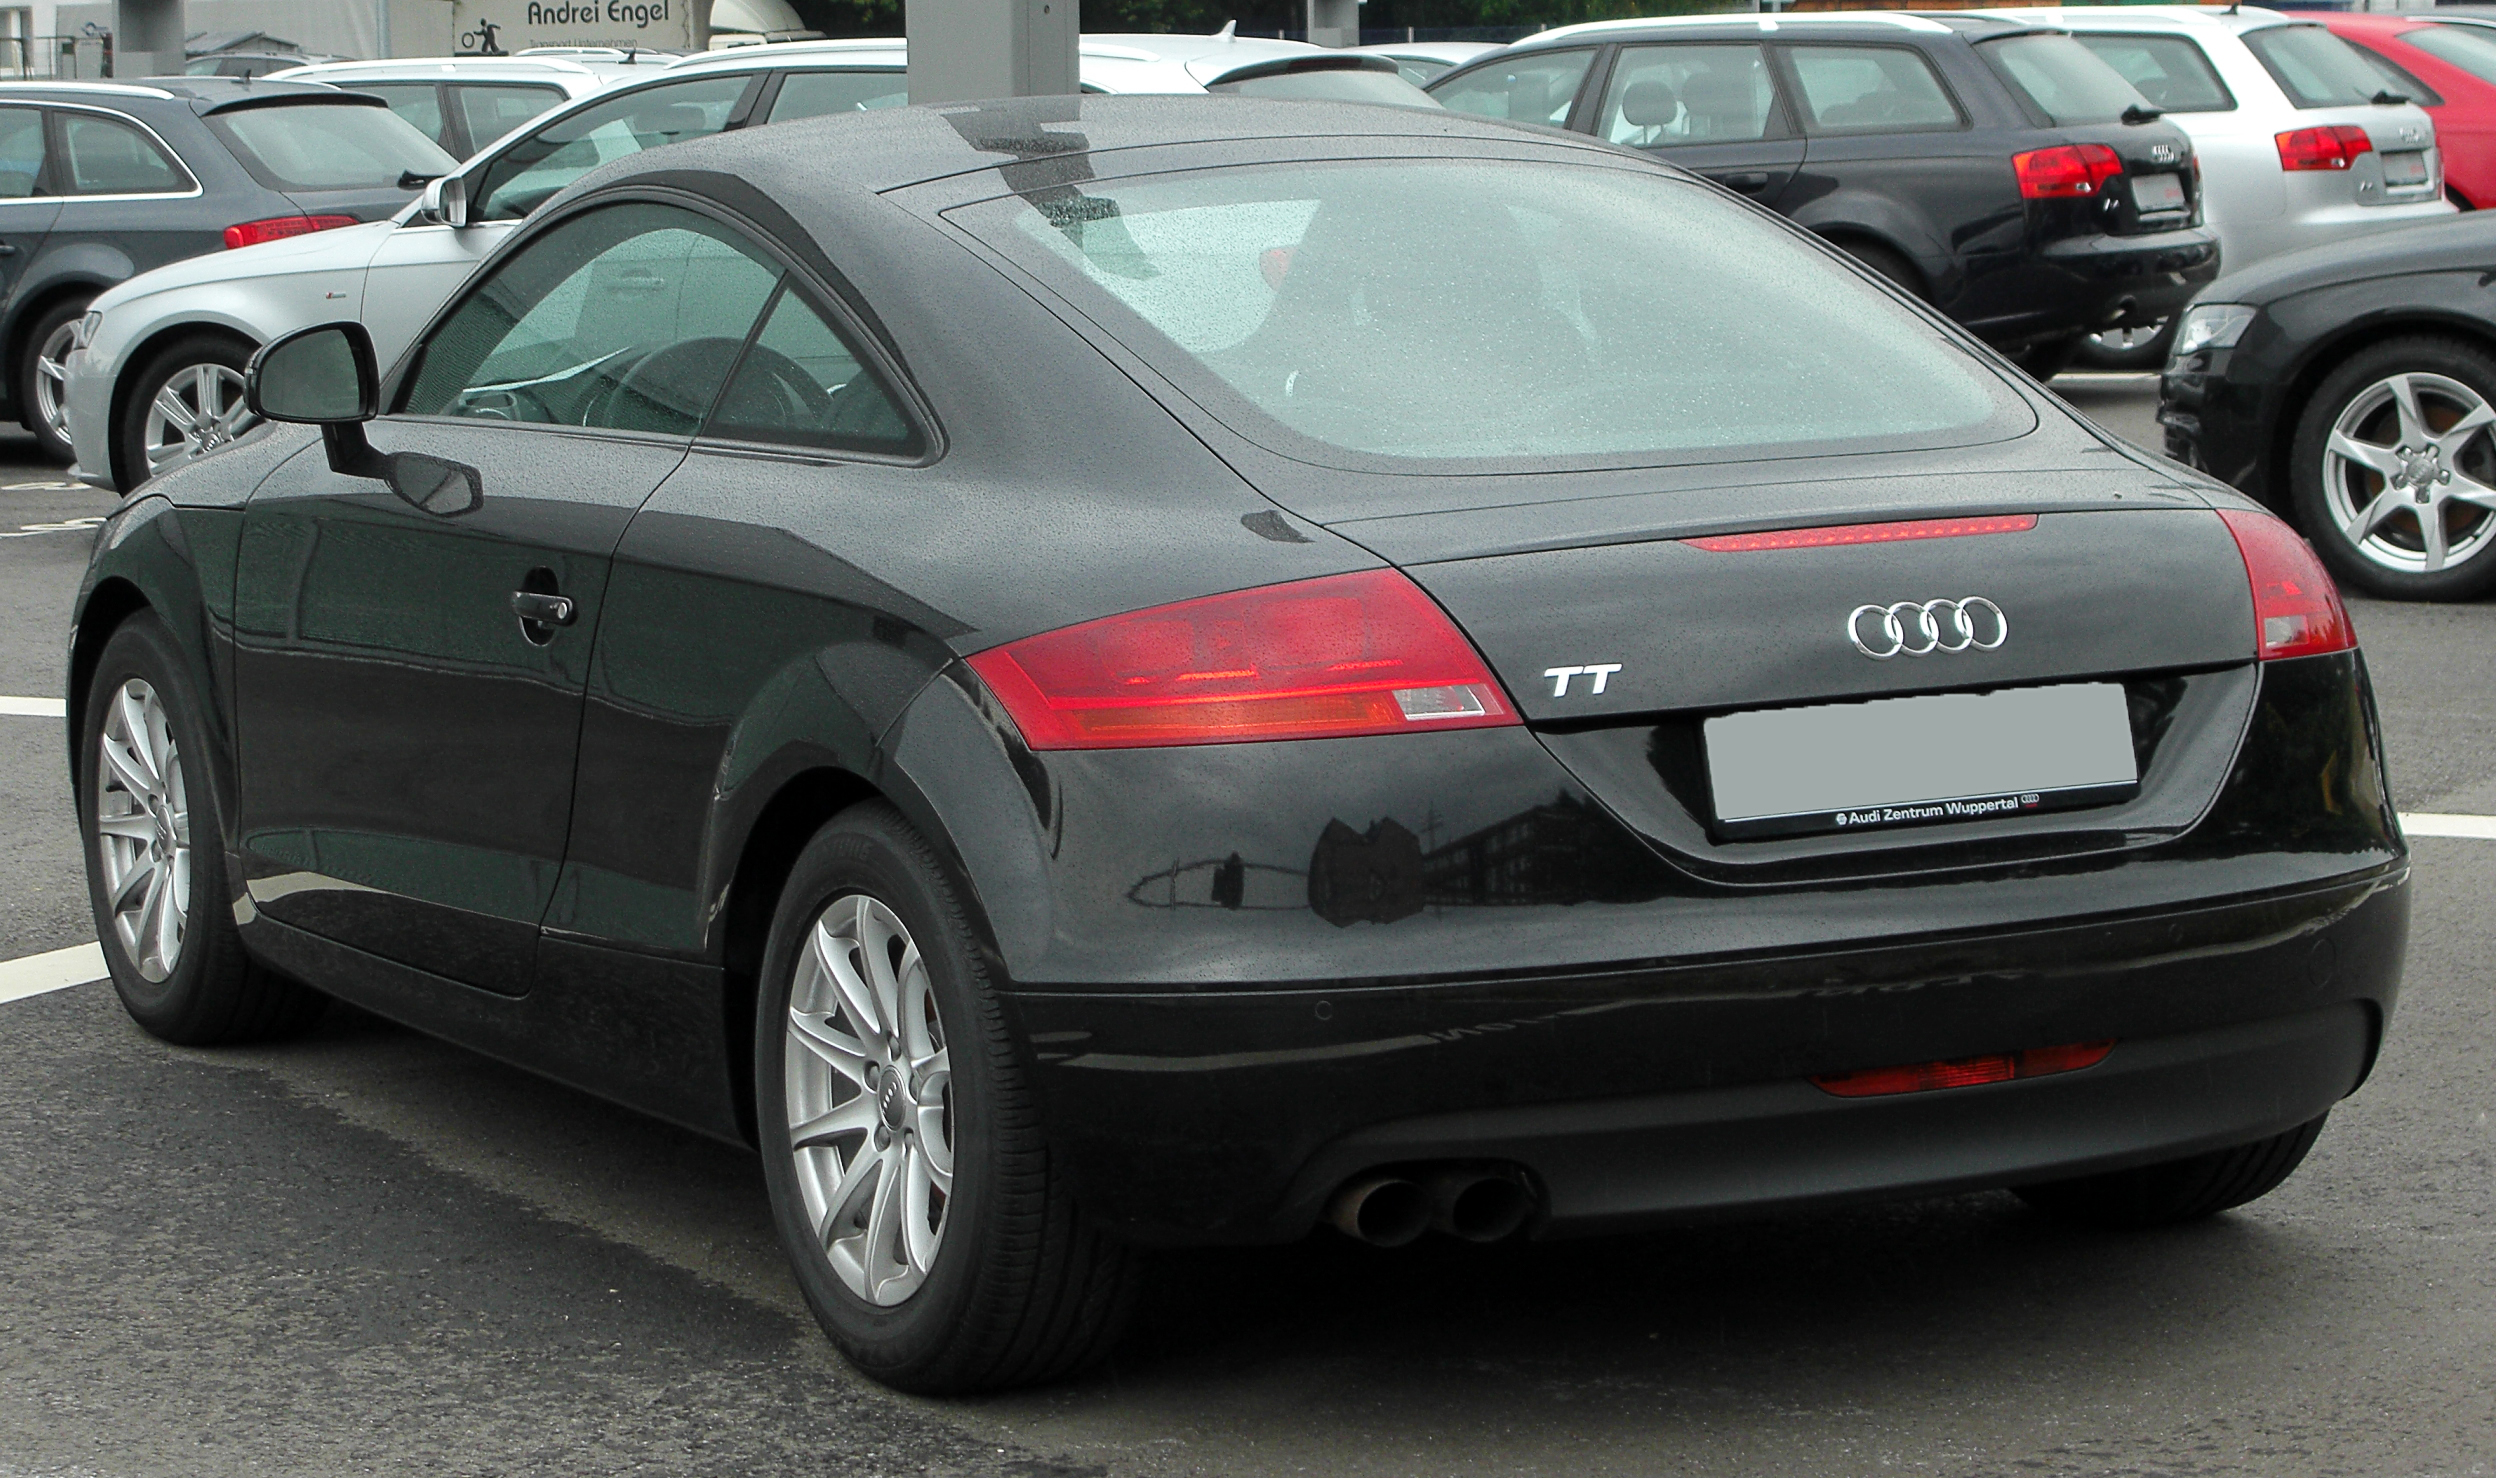 file audi tt coup 8j rear wikimedia commons. Black Bedroom Furniture Sets. Home Design Ideas